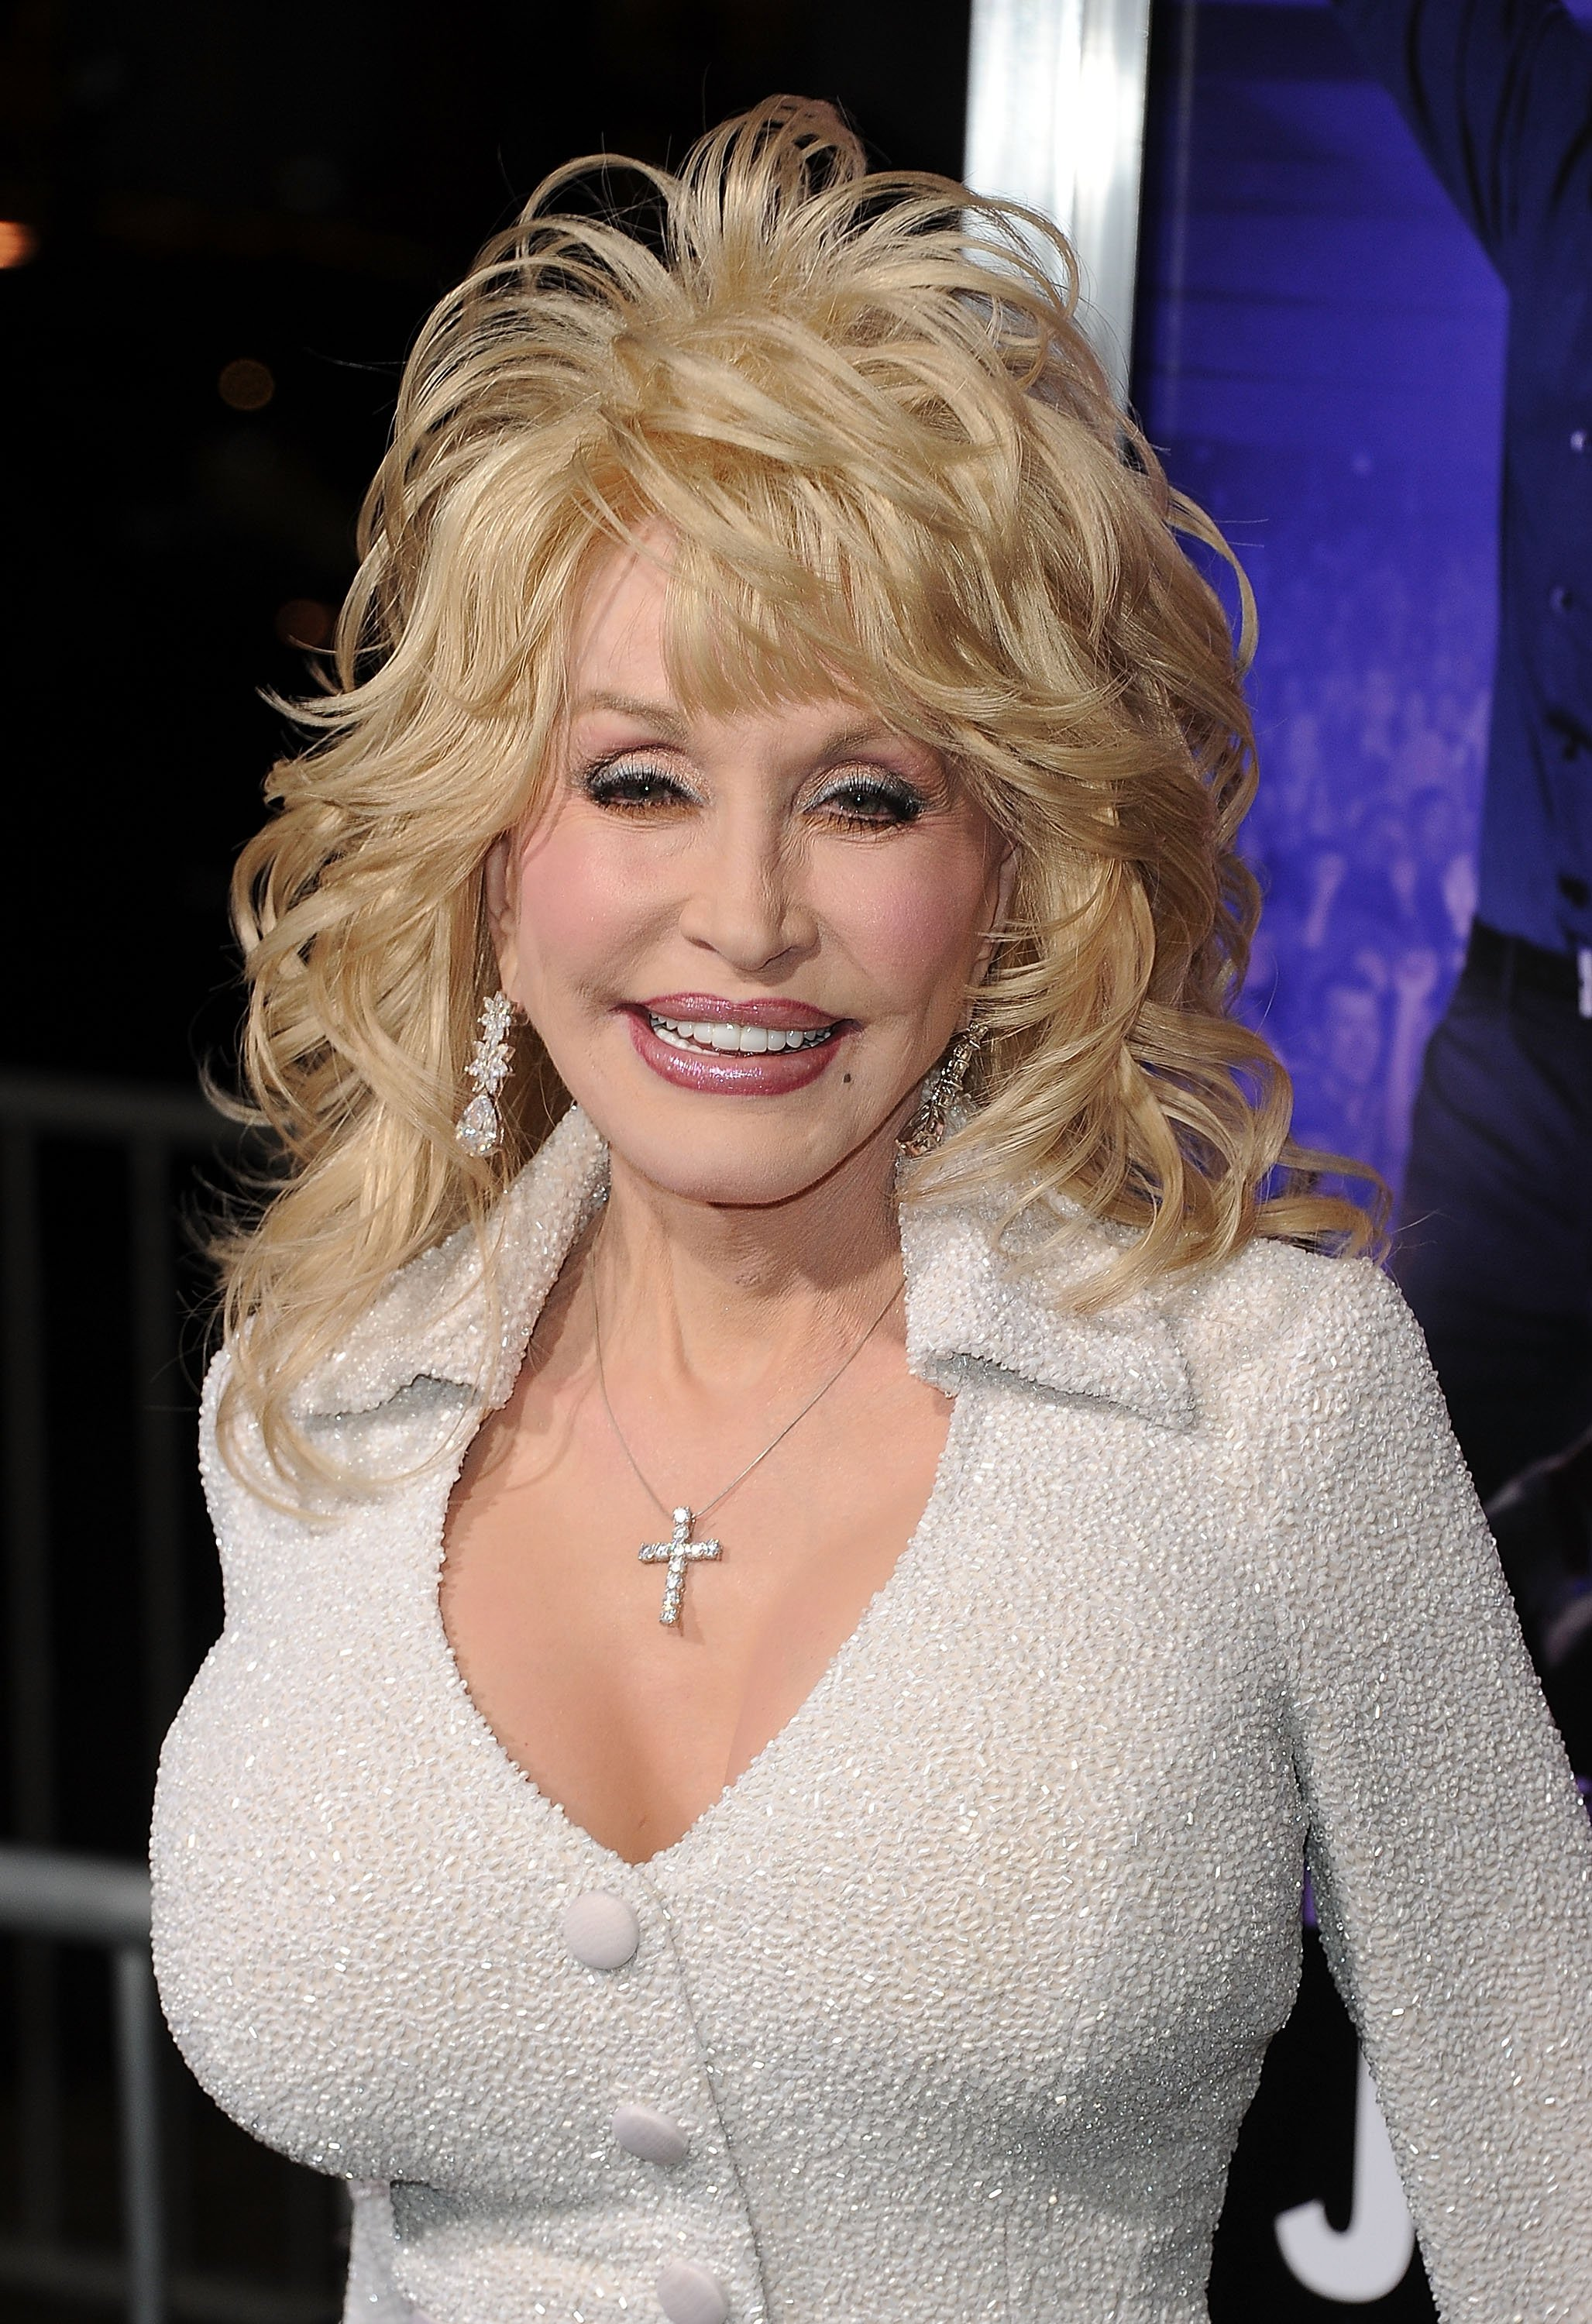 """Dolly Parton arrives at the premiere of Warner Bros. Pictures' """"Joyful Noise"""" held at Grauman's Chinese Theatre on January 9, 2012